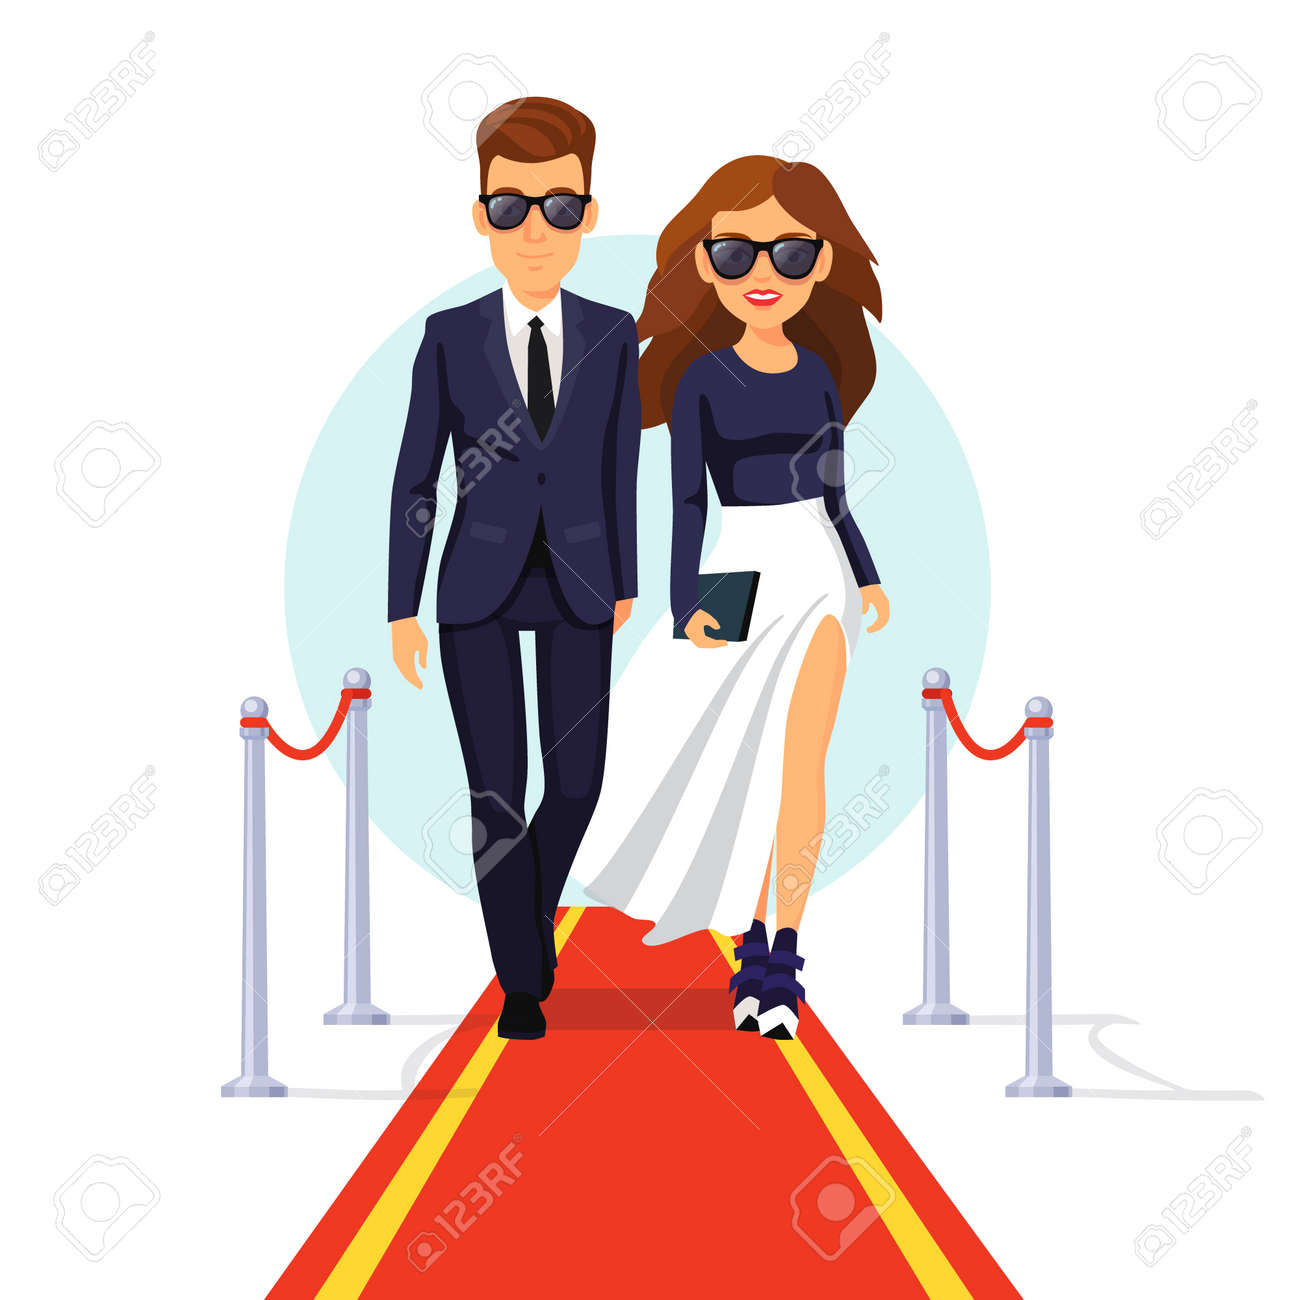 Two rich and beautiful celebrities walking on a red carpet. Flat style vector illustration isolated on white background. - 47493762